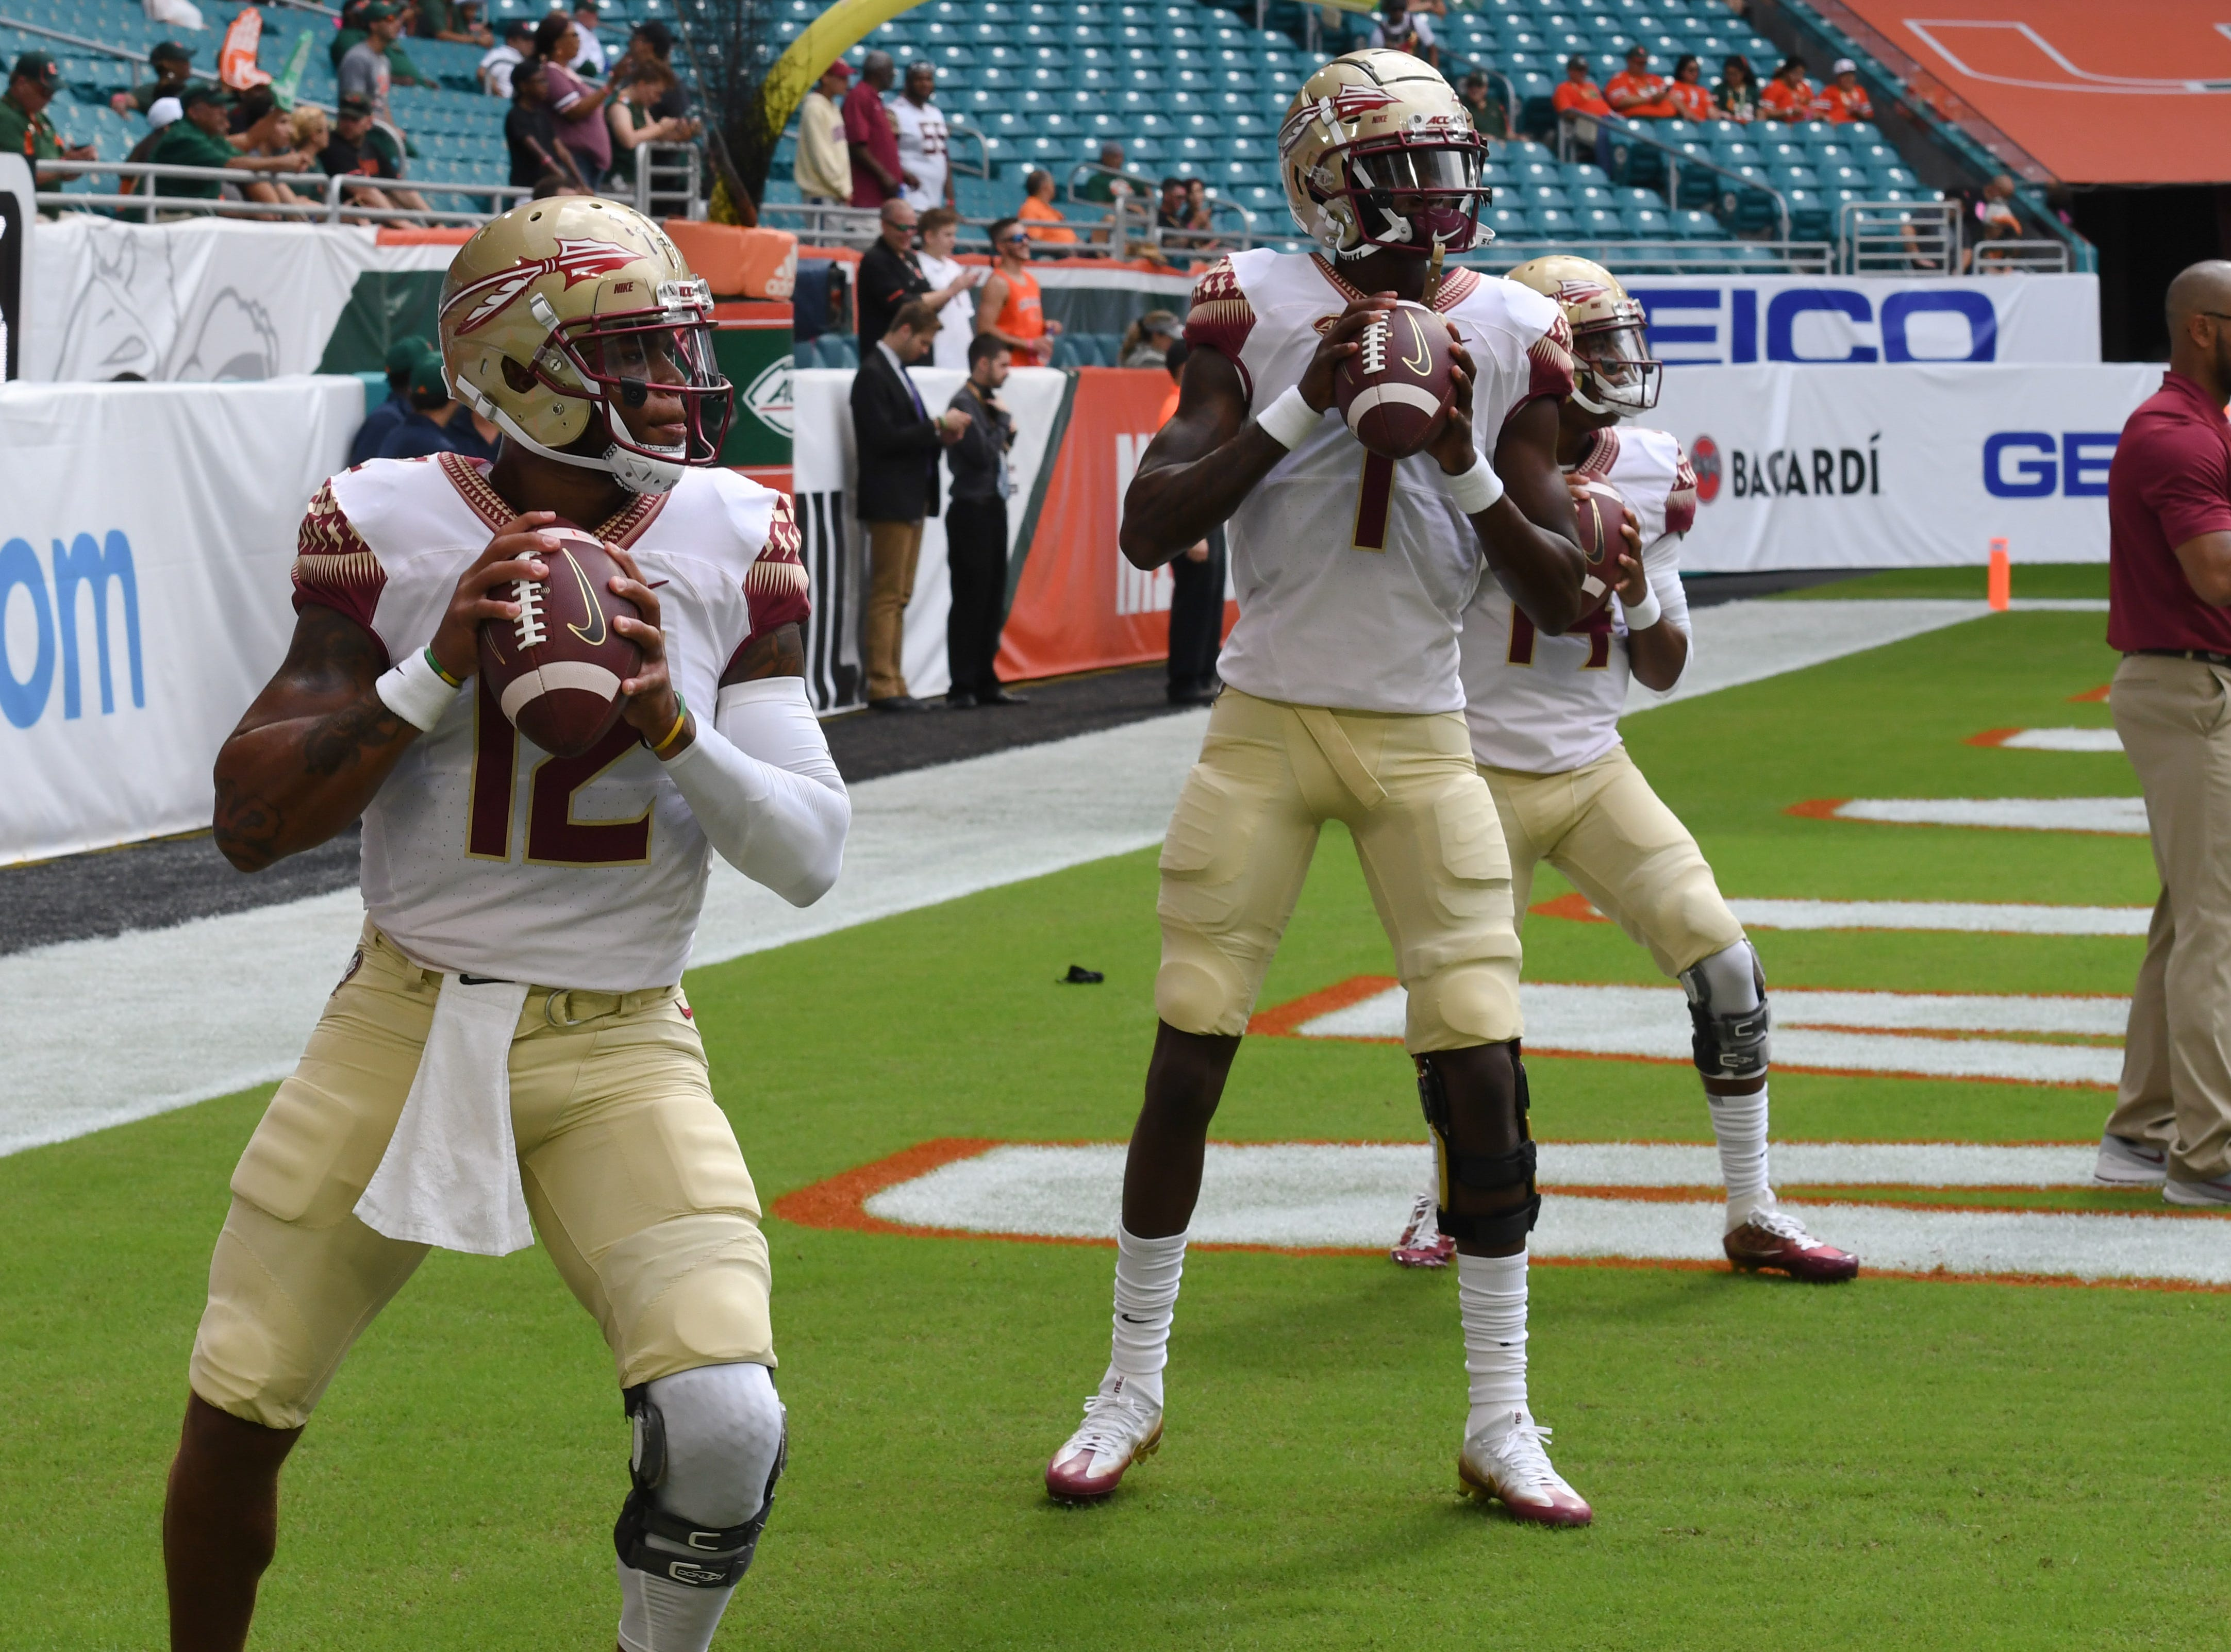 The FSU quarterbacks warming up before FSU's game against Miami at the Hard Rock Stadium on October 6th 2018.